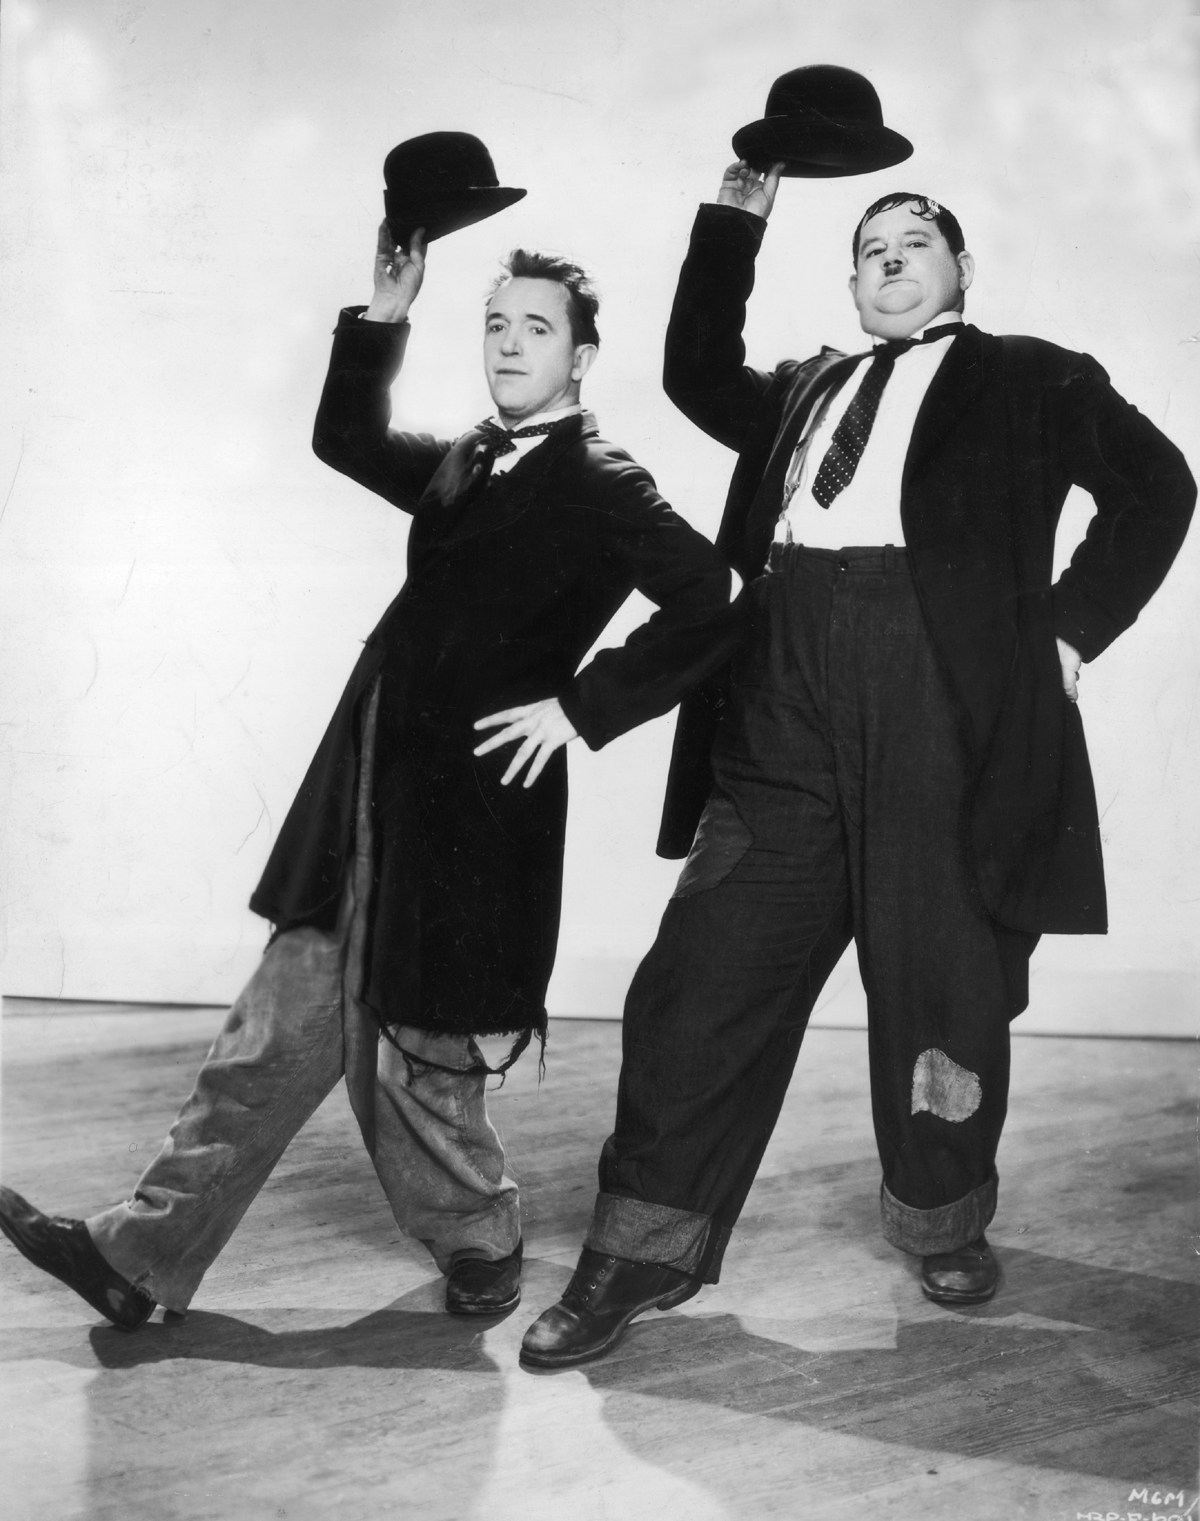 Stan Laurel (1890 - 1965) and Oliver Hardy (1892 - 1957) in a dance routine from the film 'Way Out West', directed by James Horne.   (Photo by Hulton Archive/Getty Images)